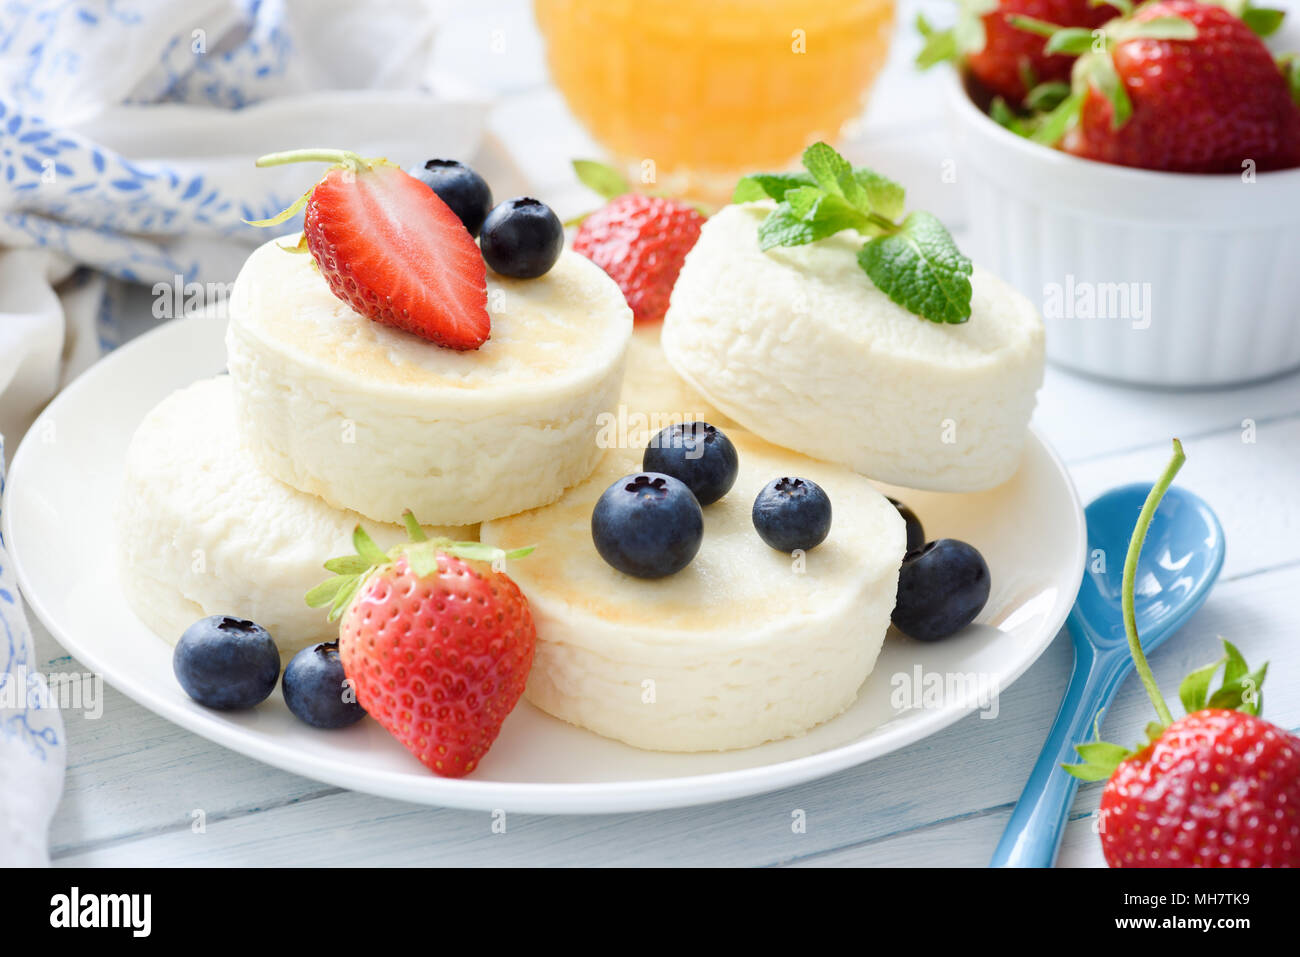 Baked cottage cheese cheesecake or syrniki with berry fruits. Healthy summer dessert. Low calorie dessert. Healthy sweet food. Closeup, selective focu - Stock Image